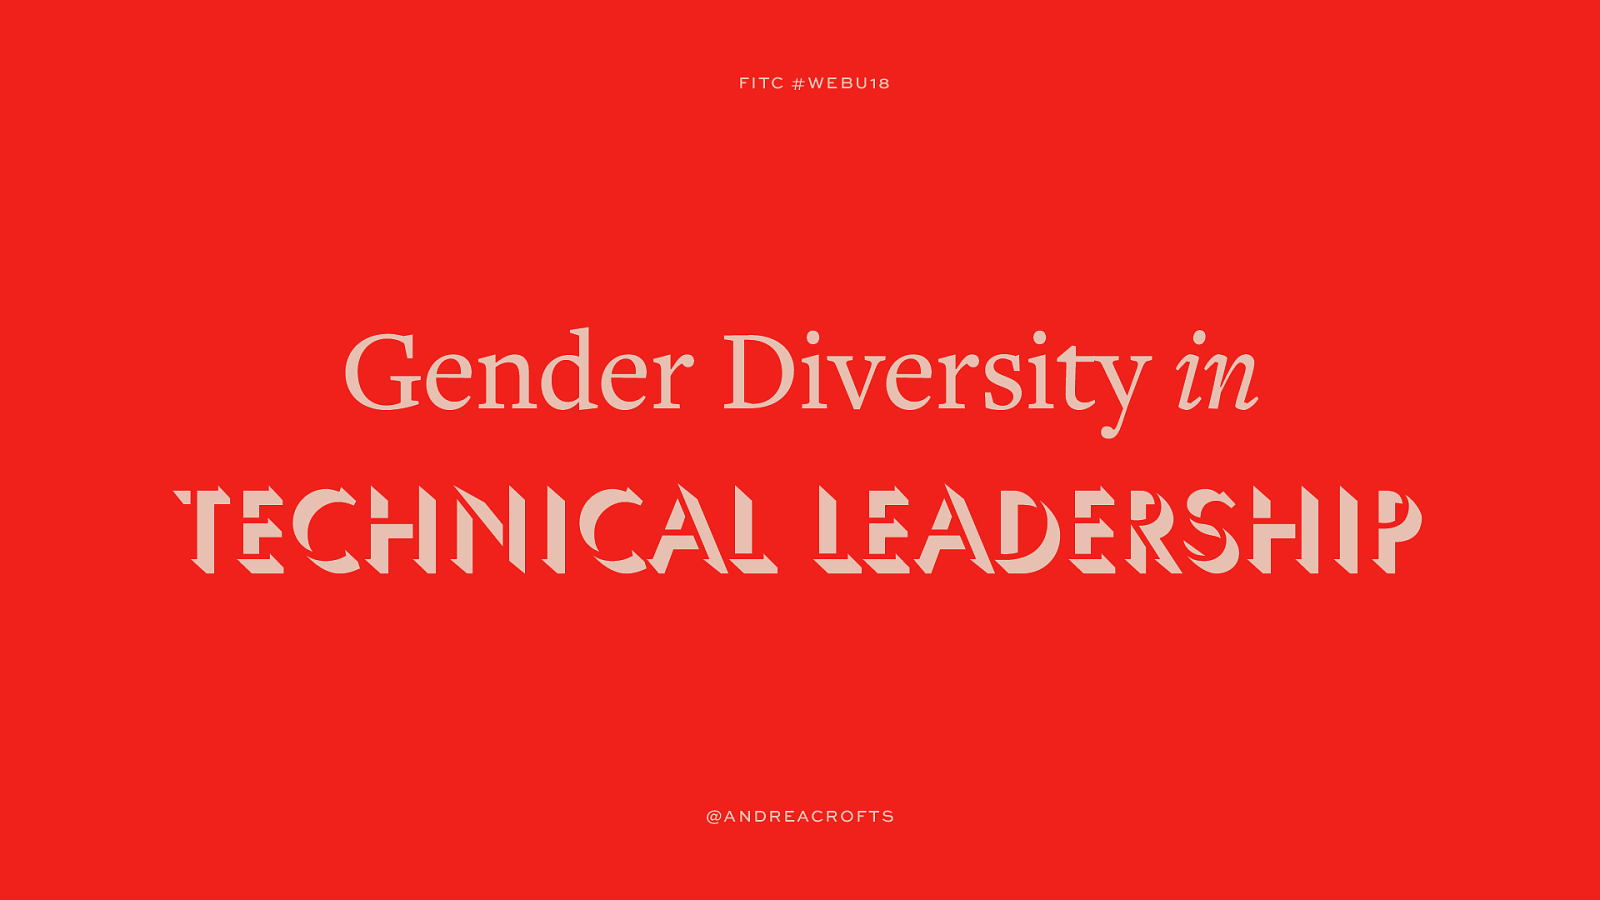 Gender Diversity in Technical Leadership